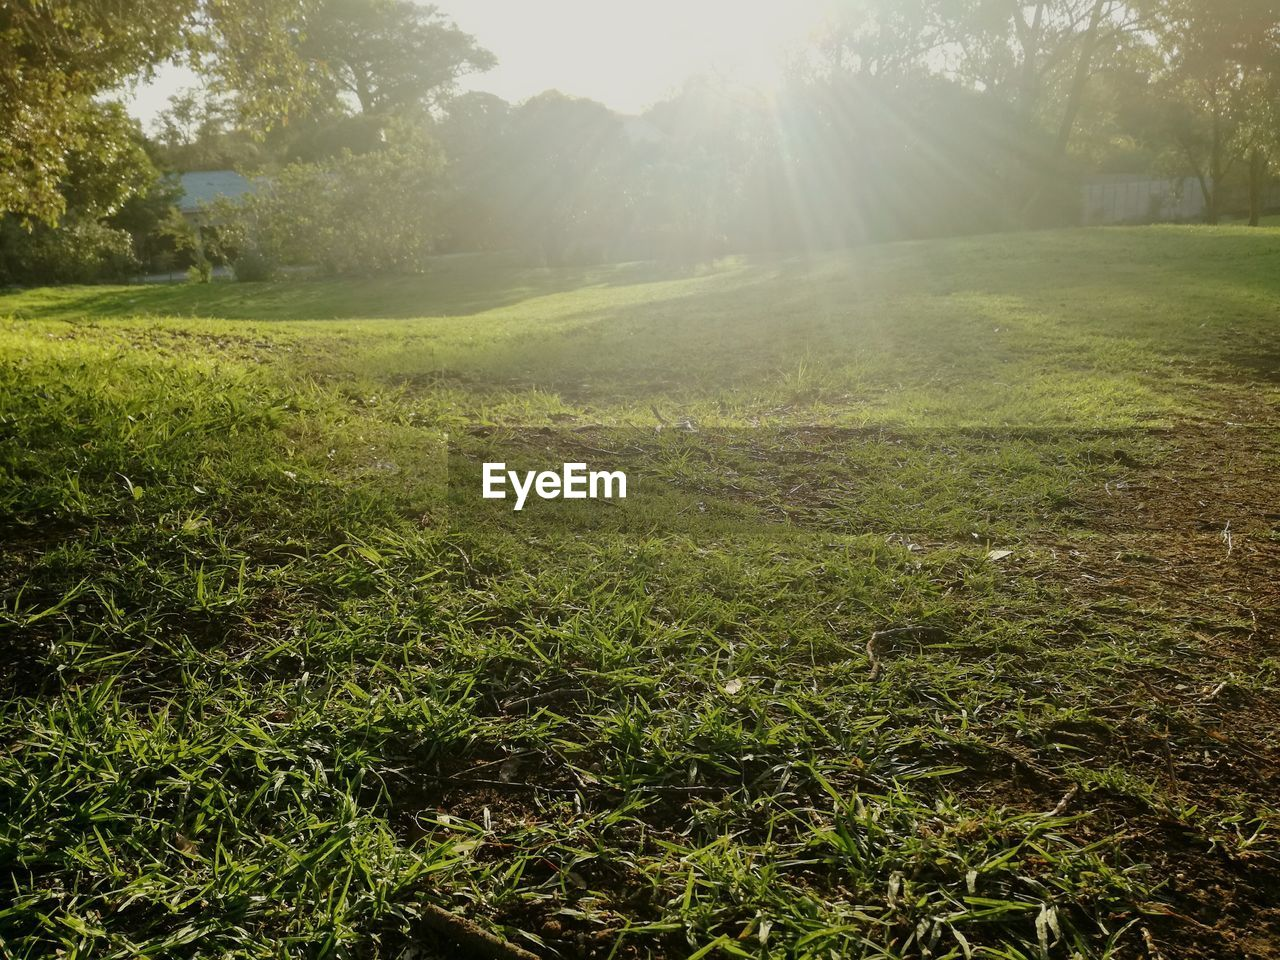 grass, nature, tranquility, tranquil scene, tree, sunbeam, field, growth, beauty in nature, sunlight, day, no people, outdoors, green color, landscape, scenics